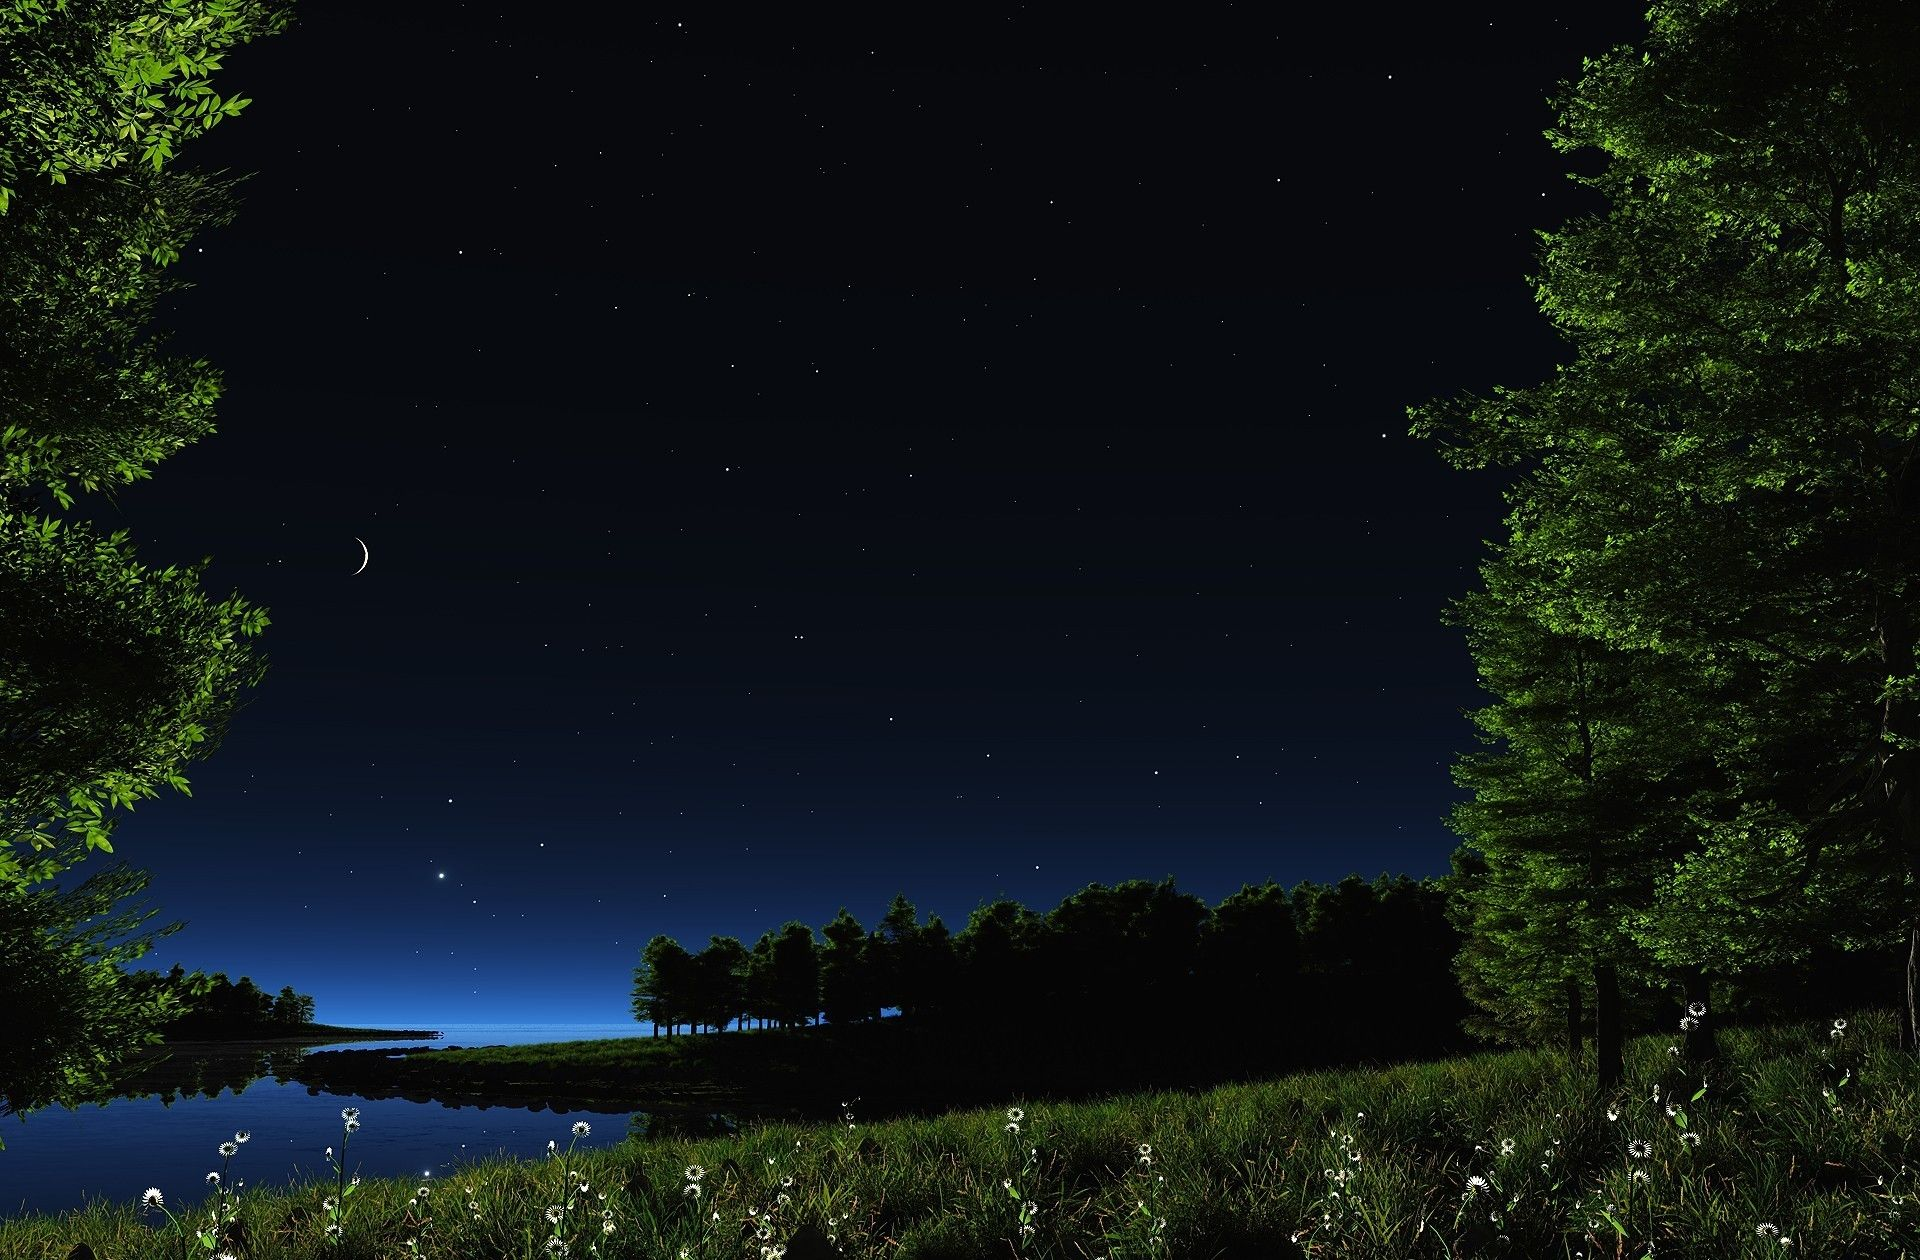 Pond Herbs Lake River Stars Moon Landscape Night Grass Nature Plants Daisies Flower Night Scenery Starry Night Wallpaper Nature Images